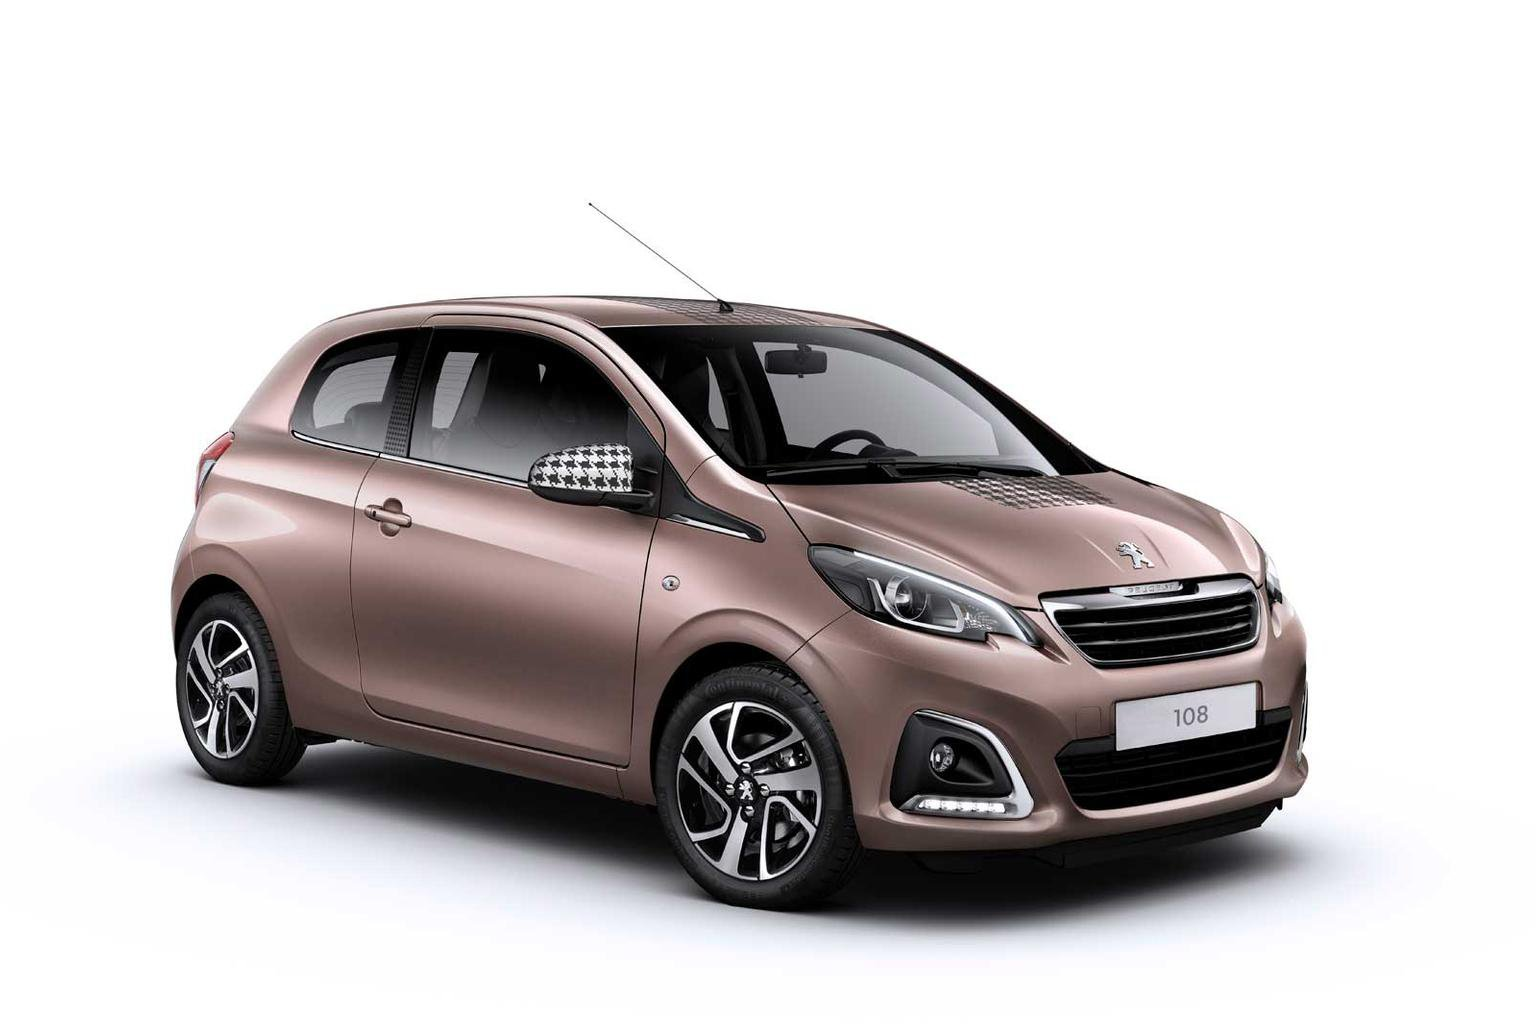 New Peugeot 108 city car costs from 8245